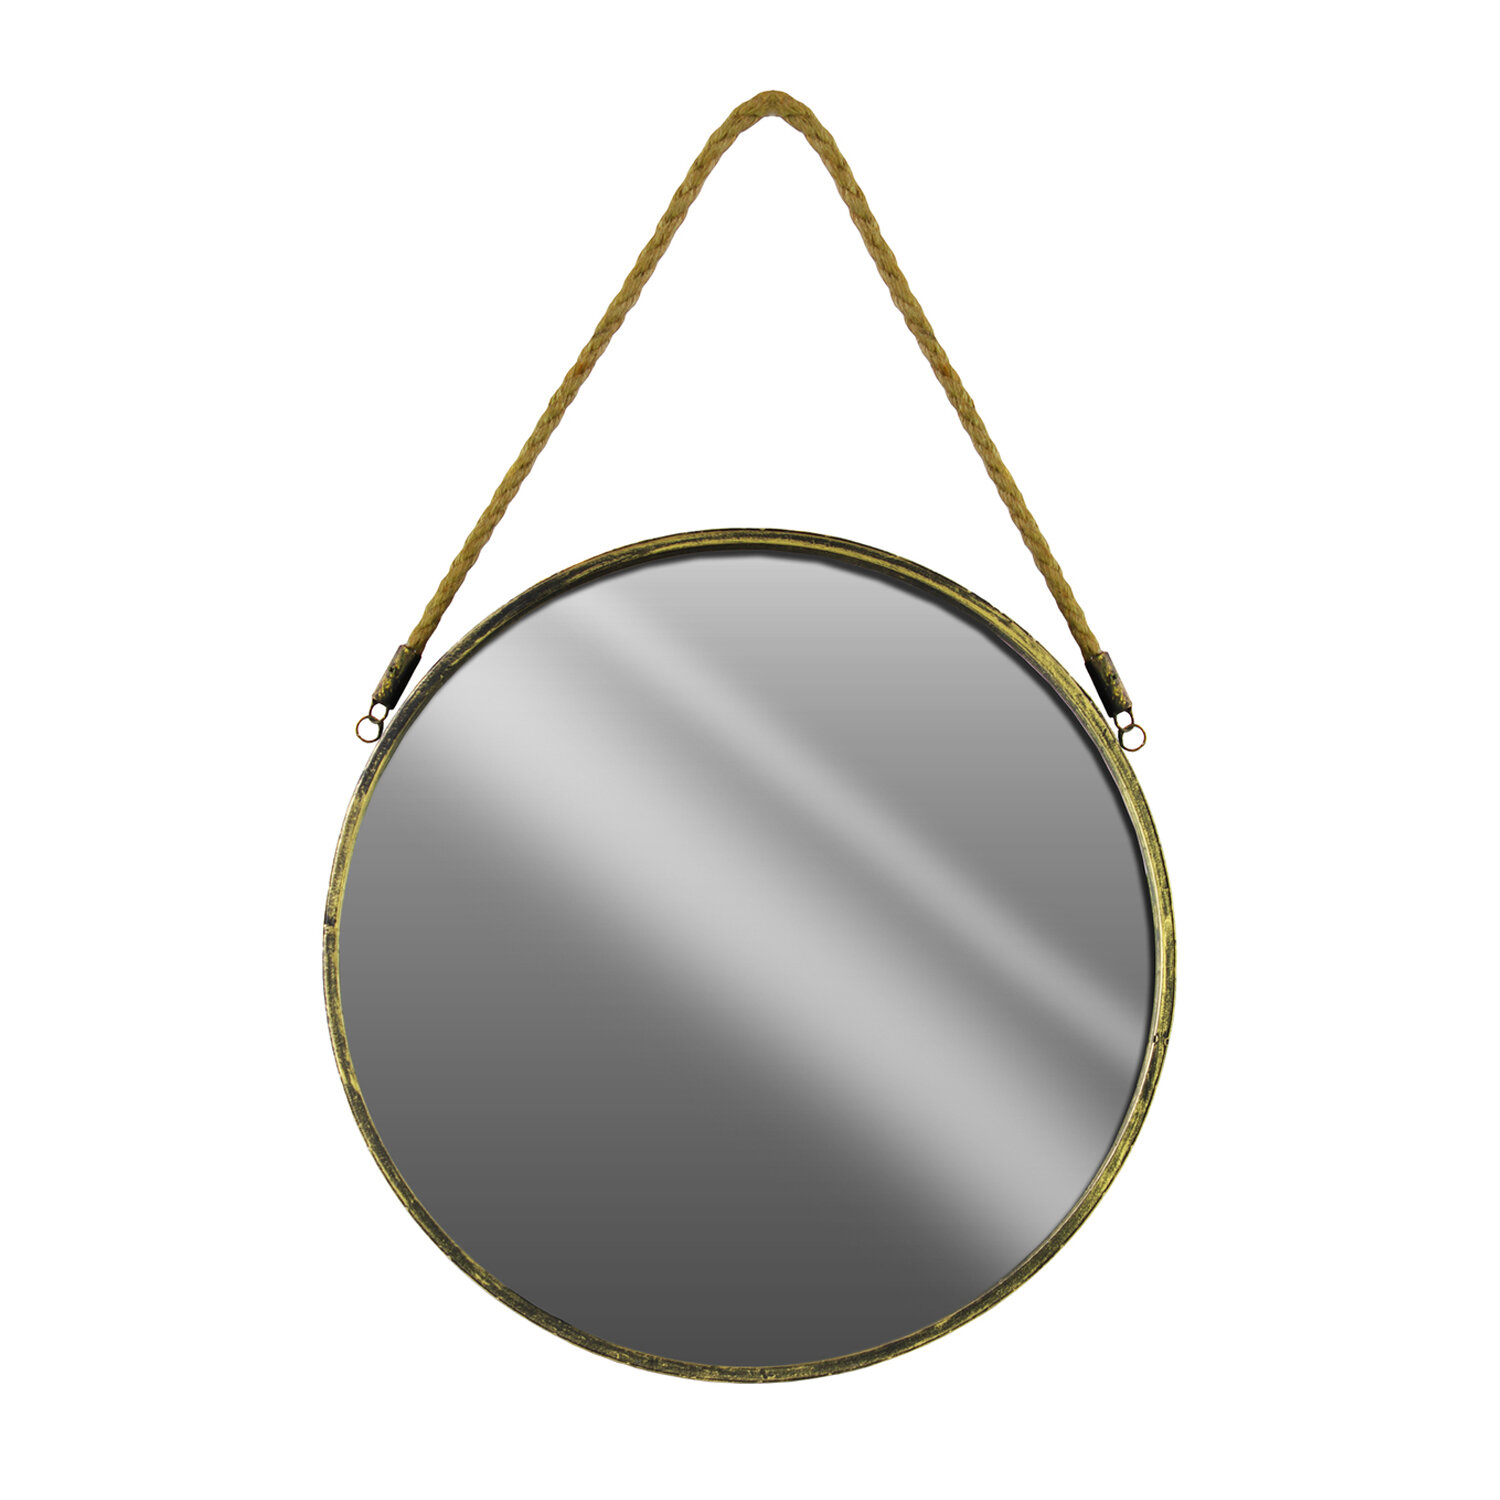 Brass Hanging Mirrors You Ll Love In 2021 Wayfair